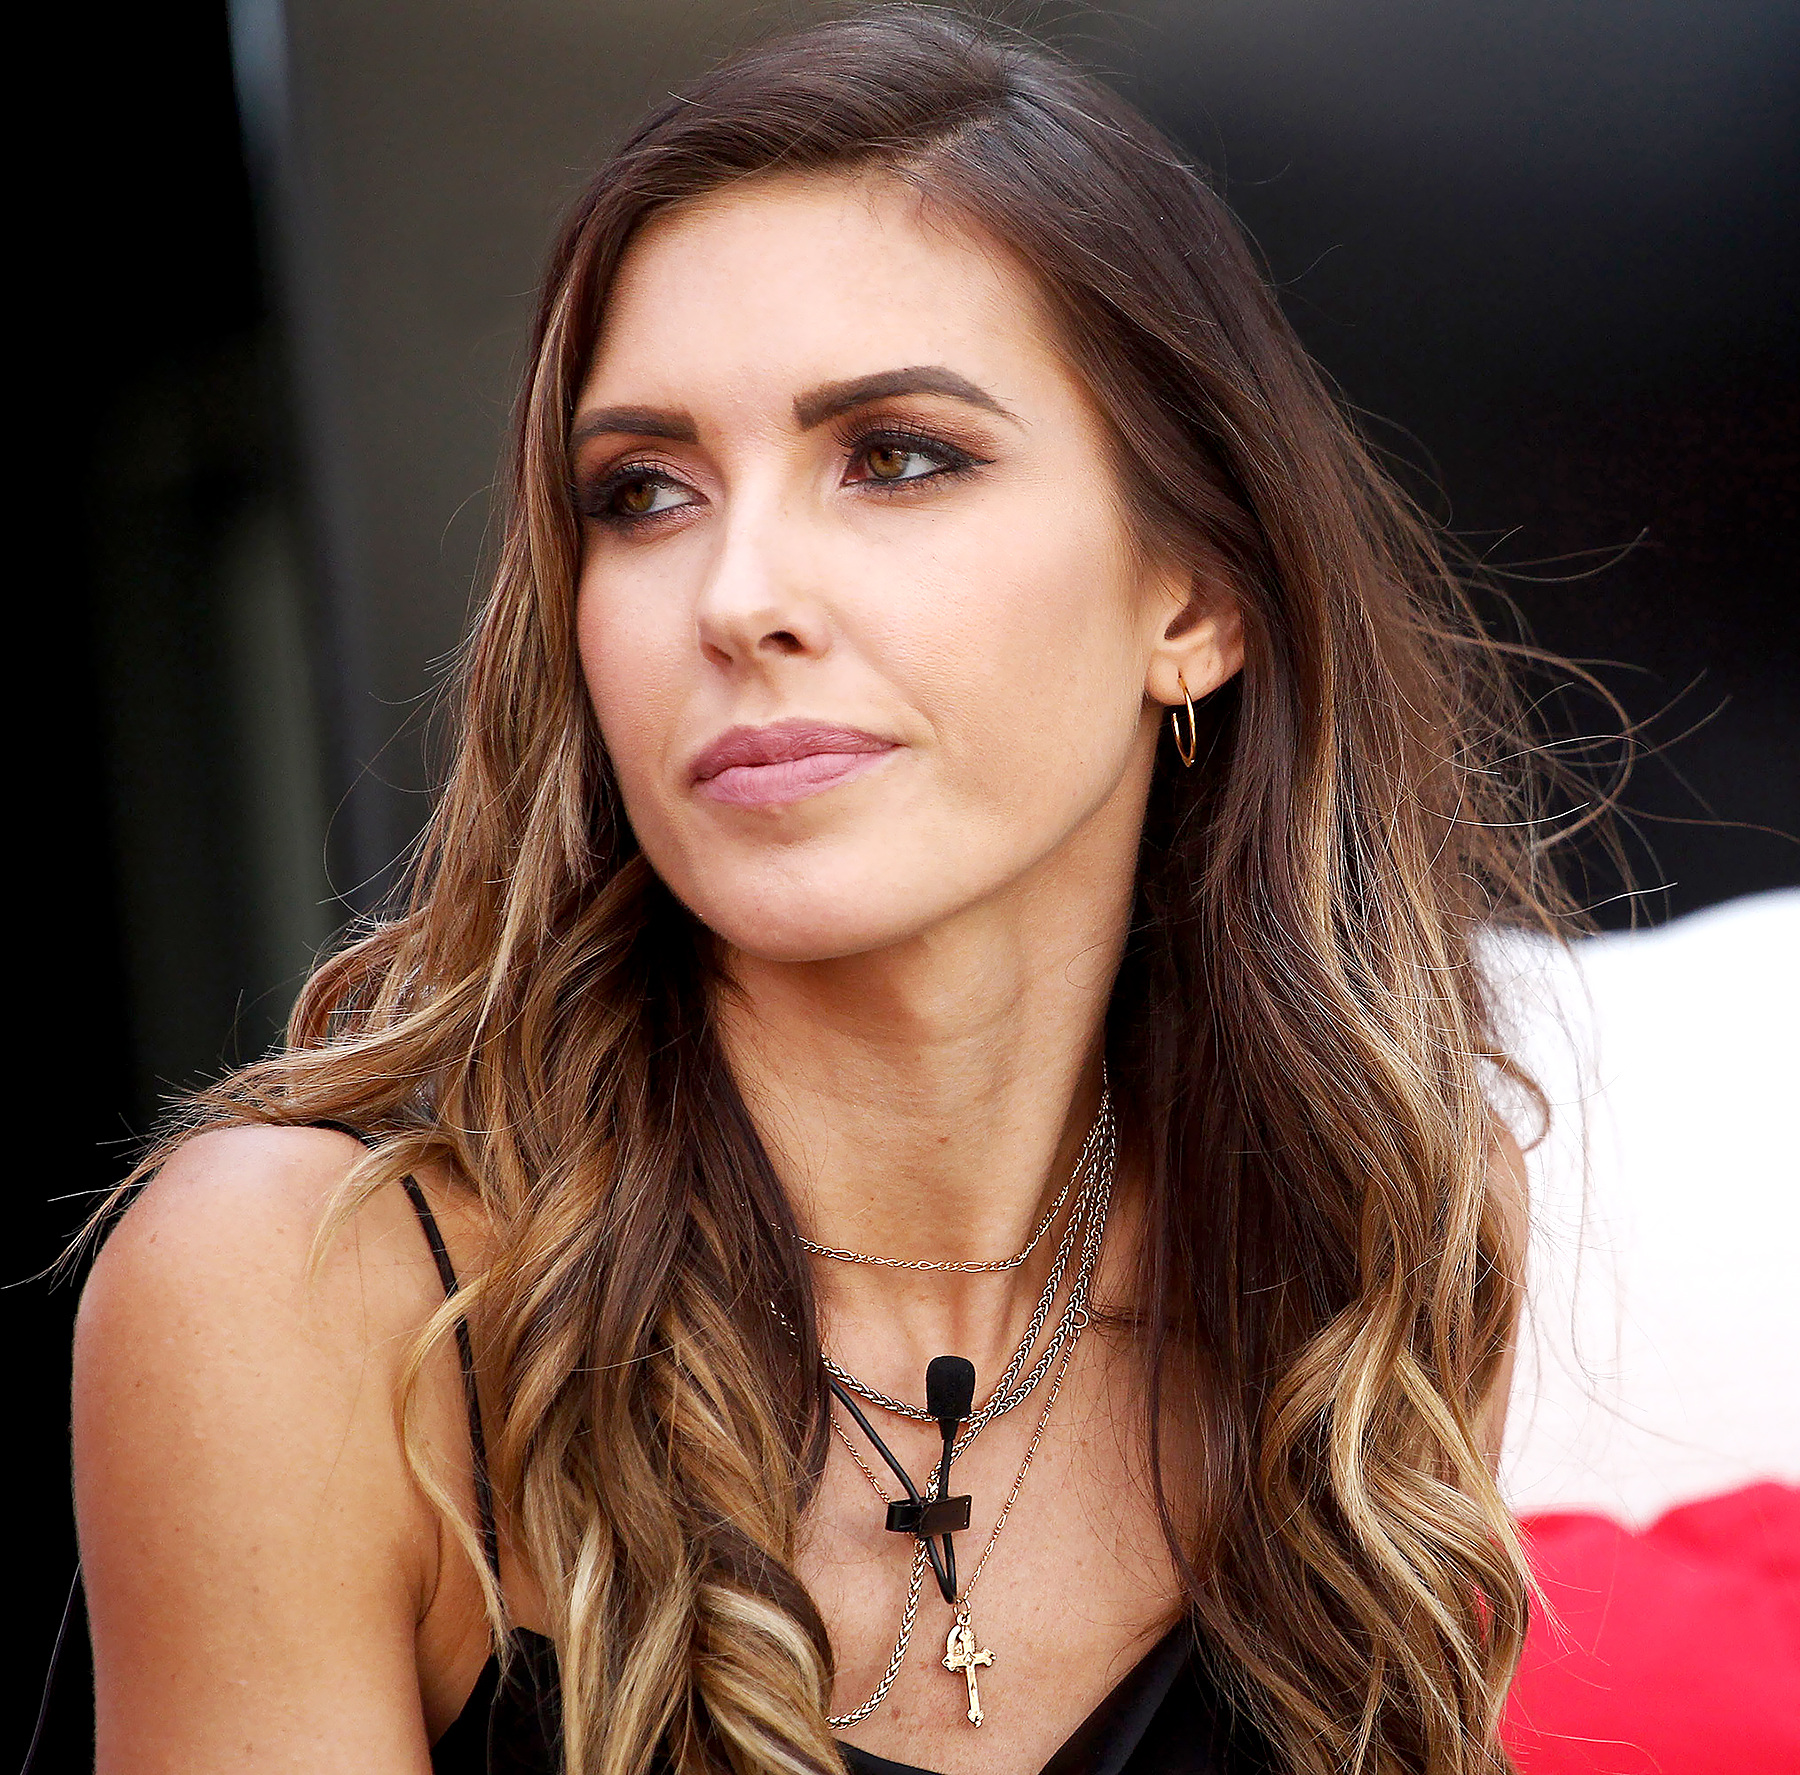 Images Audrina Patridge nude photos 2019